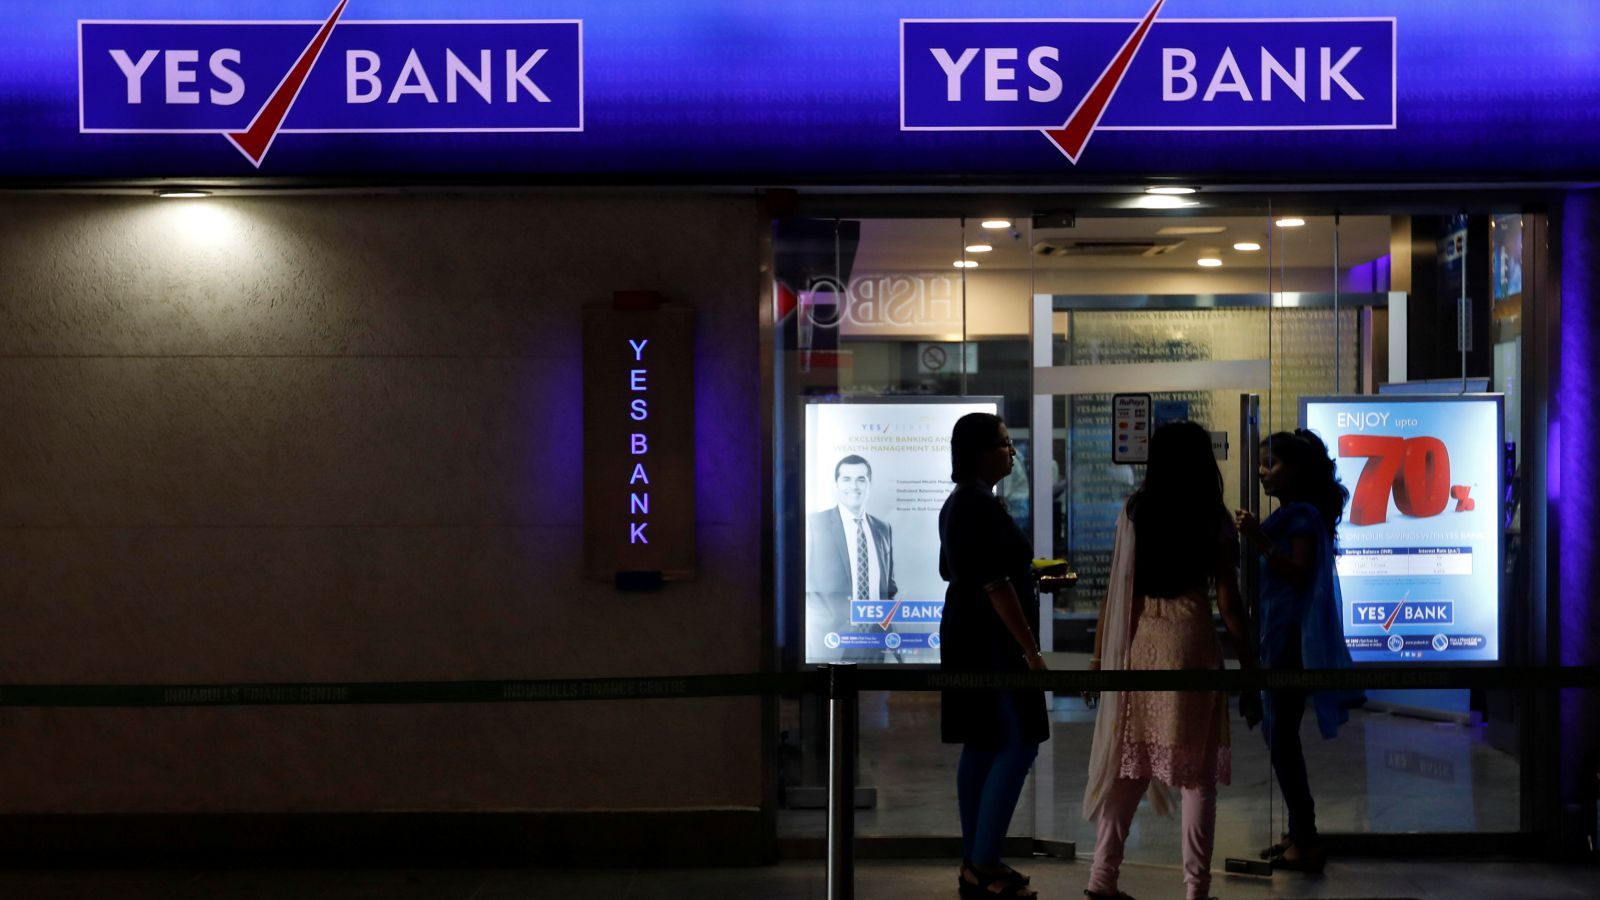 India's central bank has booted yet another top banker